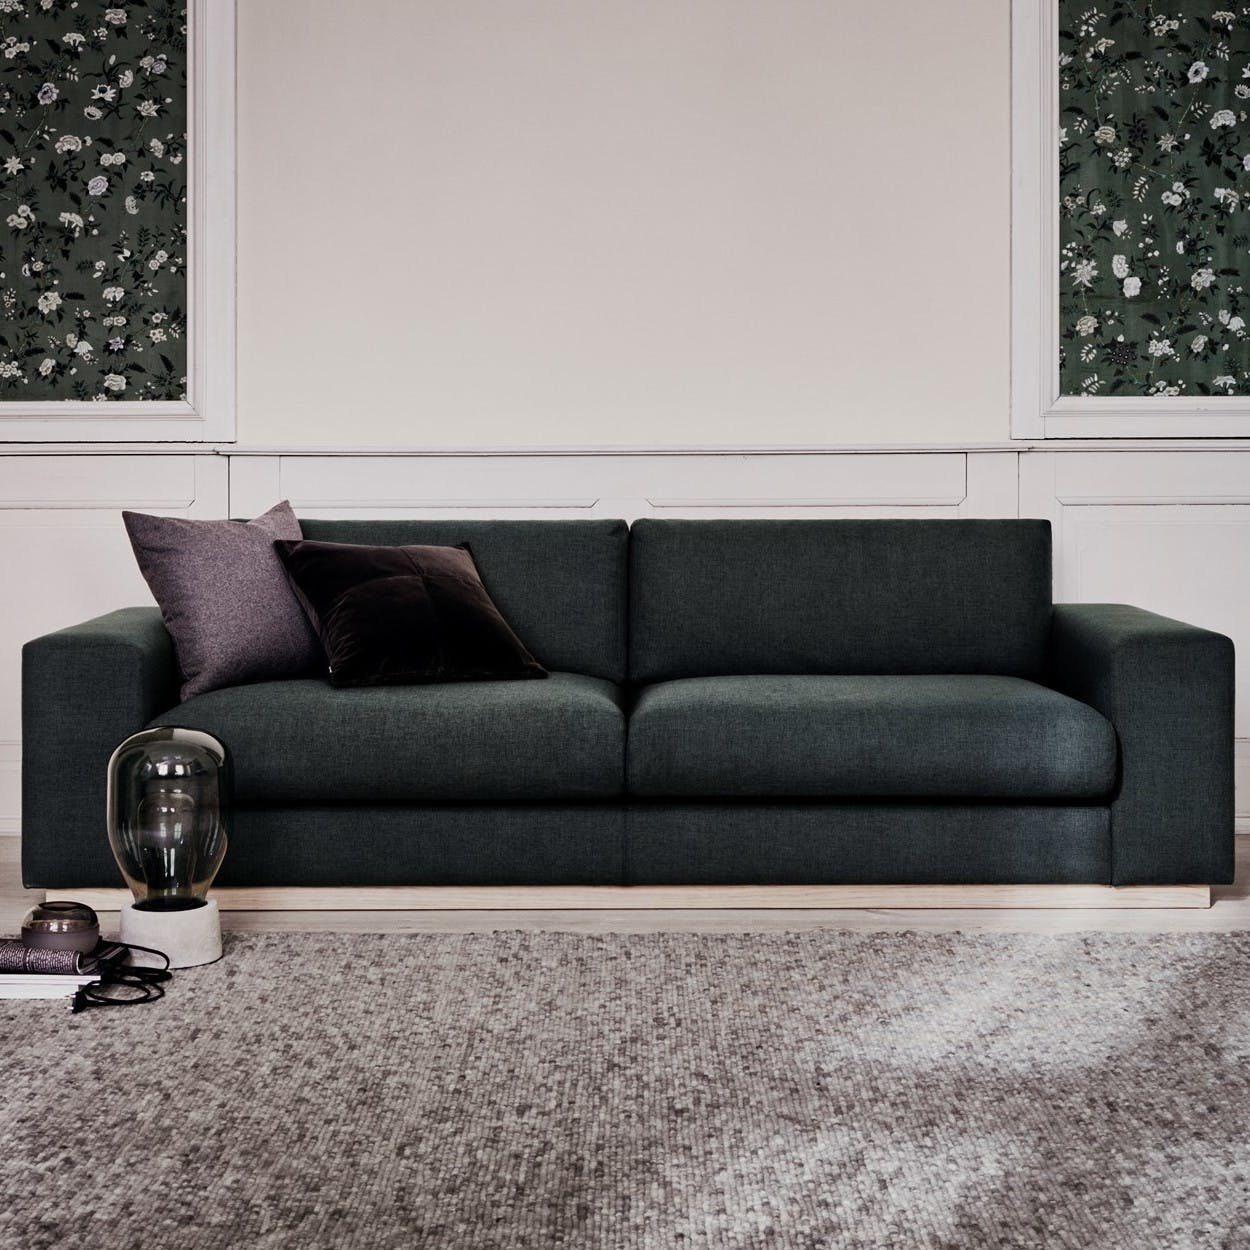 Bolia Dark Grey Sepia Sofa Insitu Haute Living